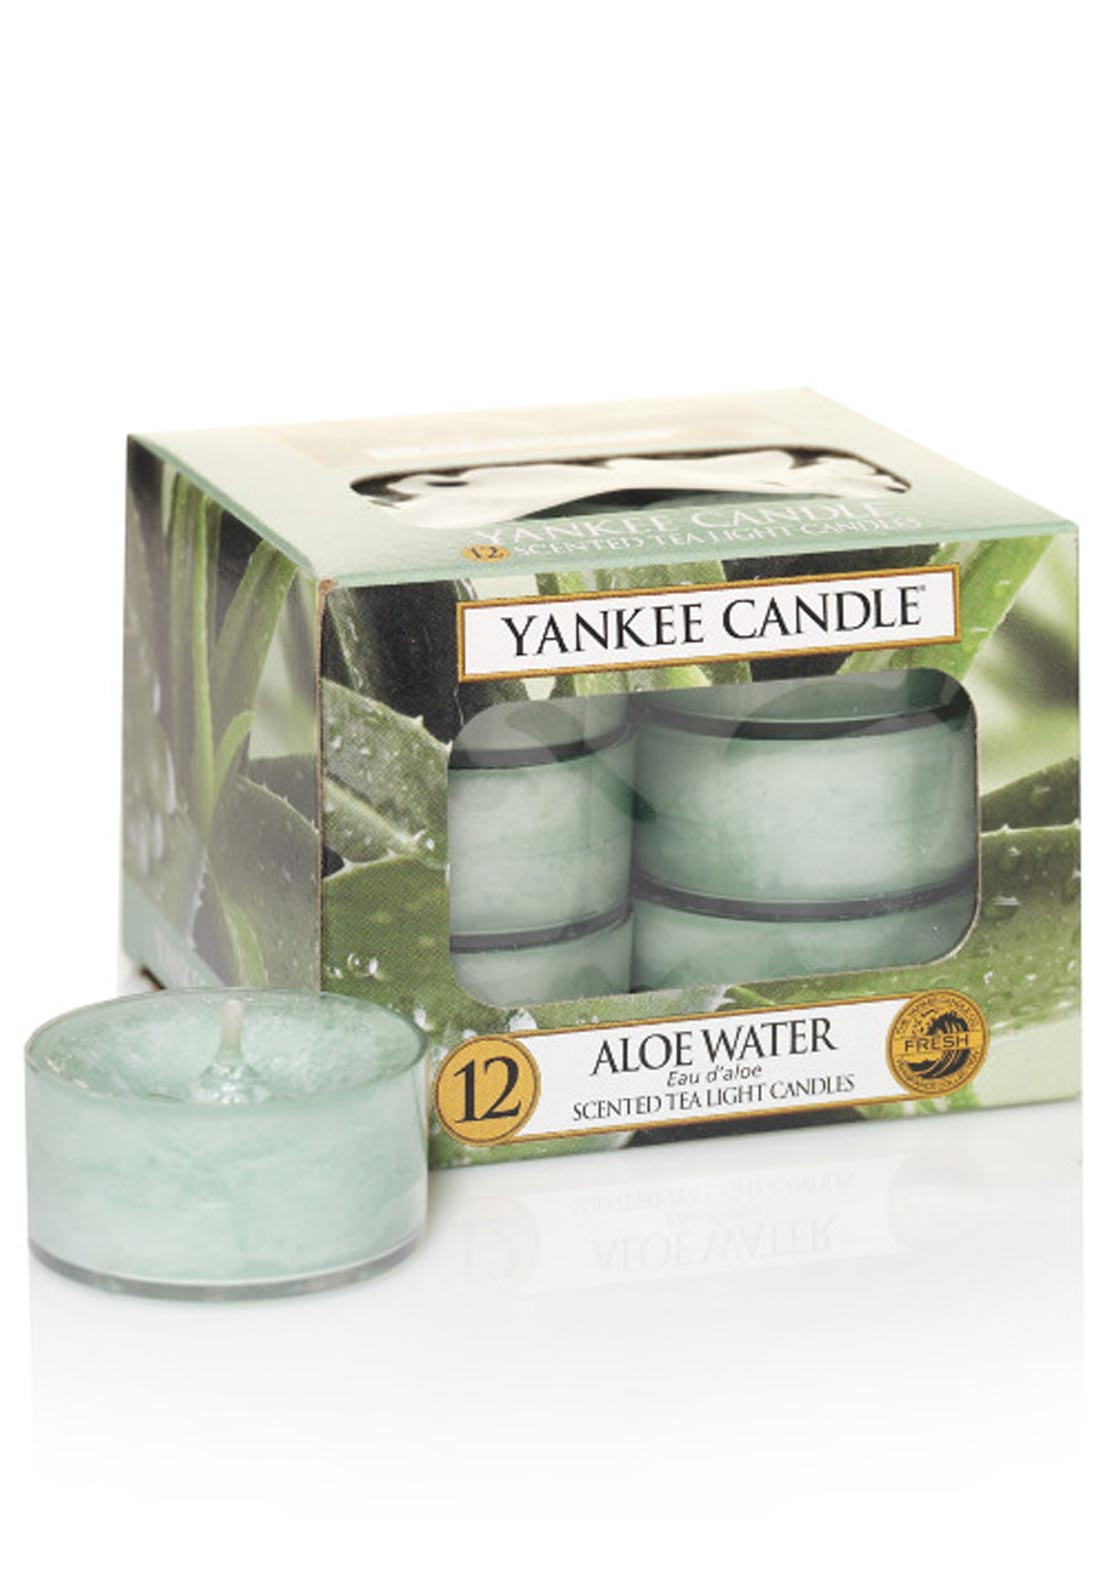 Yankee Candle 12 Scented Tea Light Candles, Aloe Water